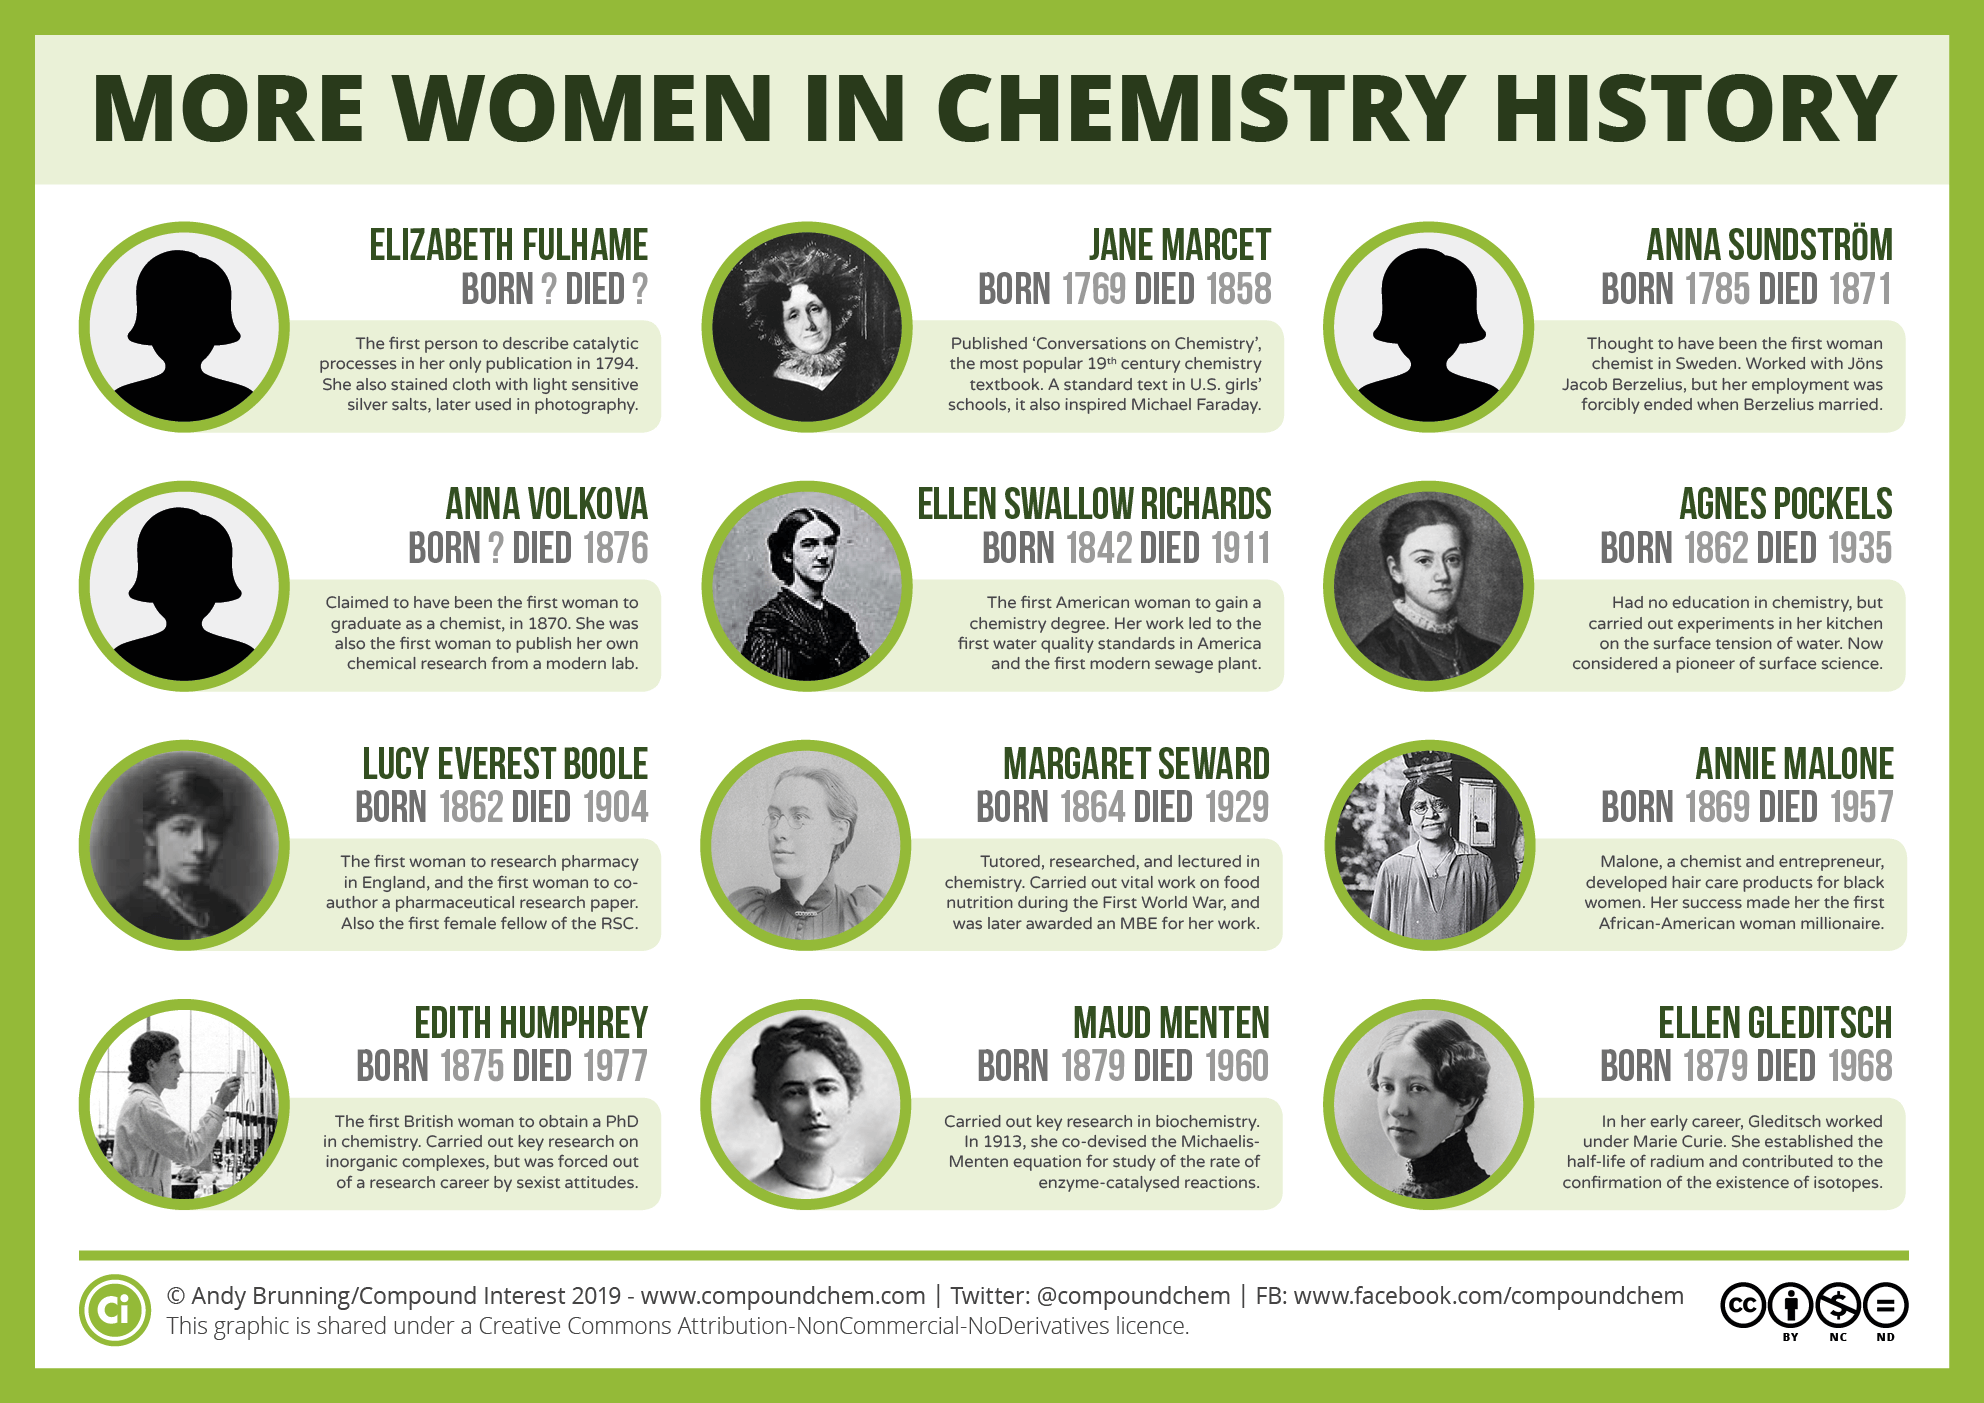 International Women's Day: Twelve more women from chemistry history